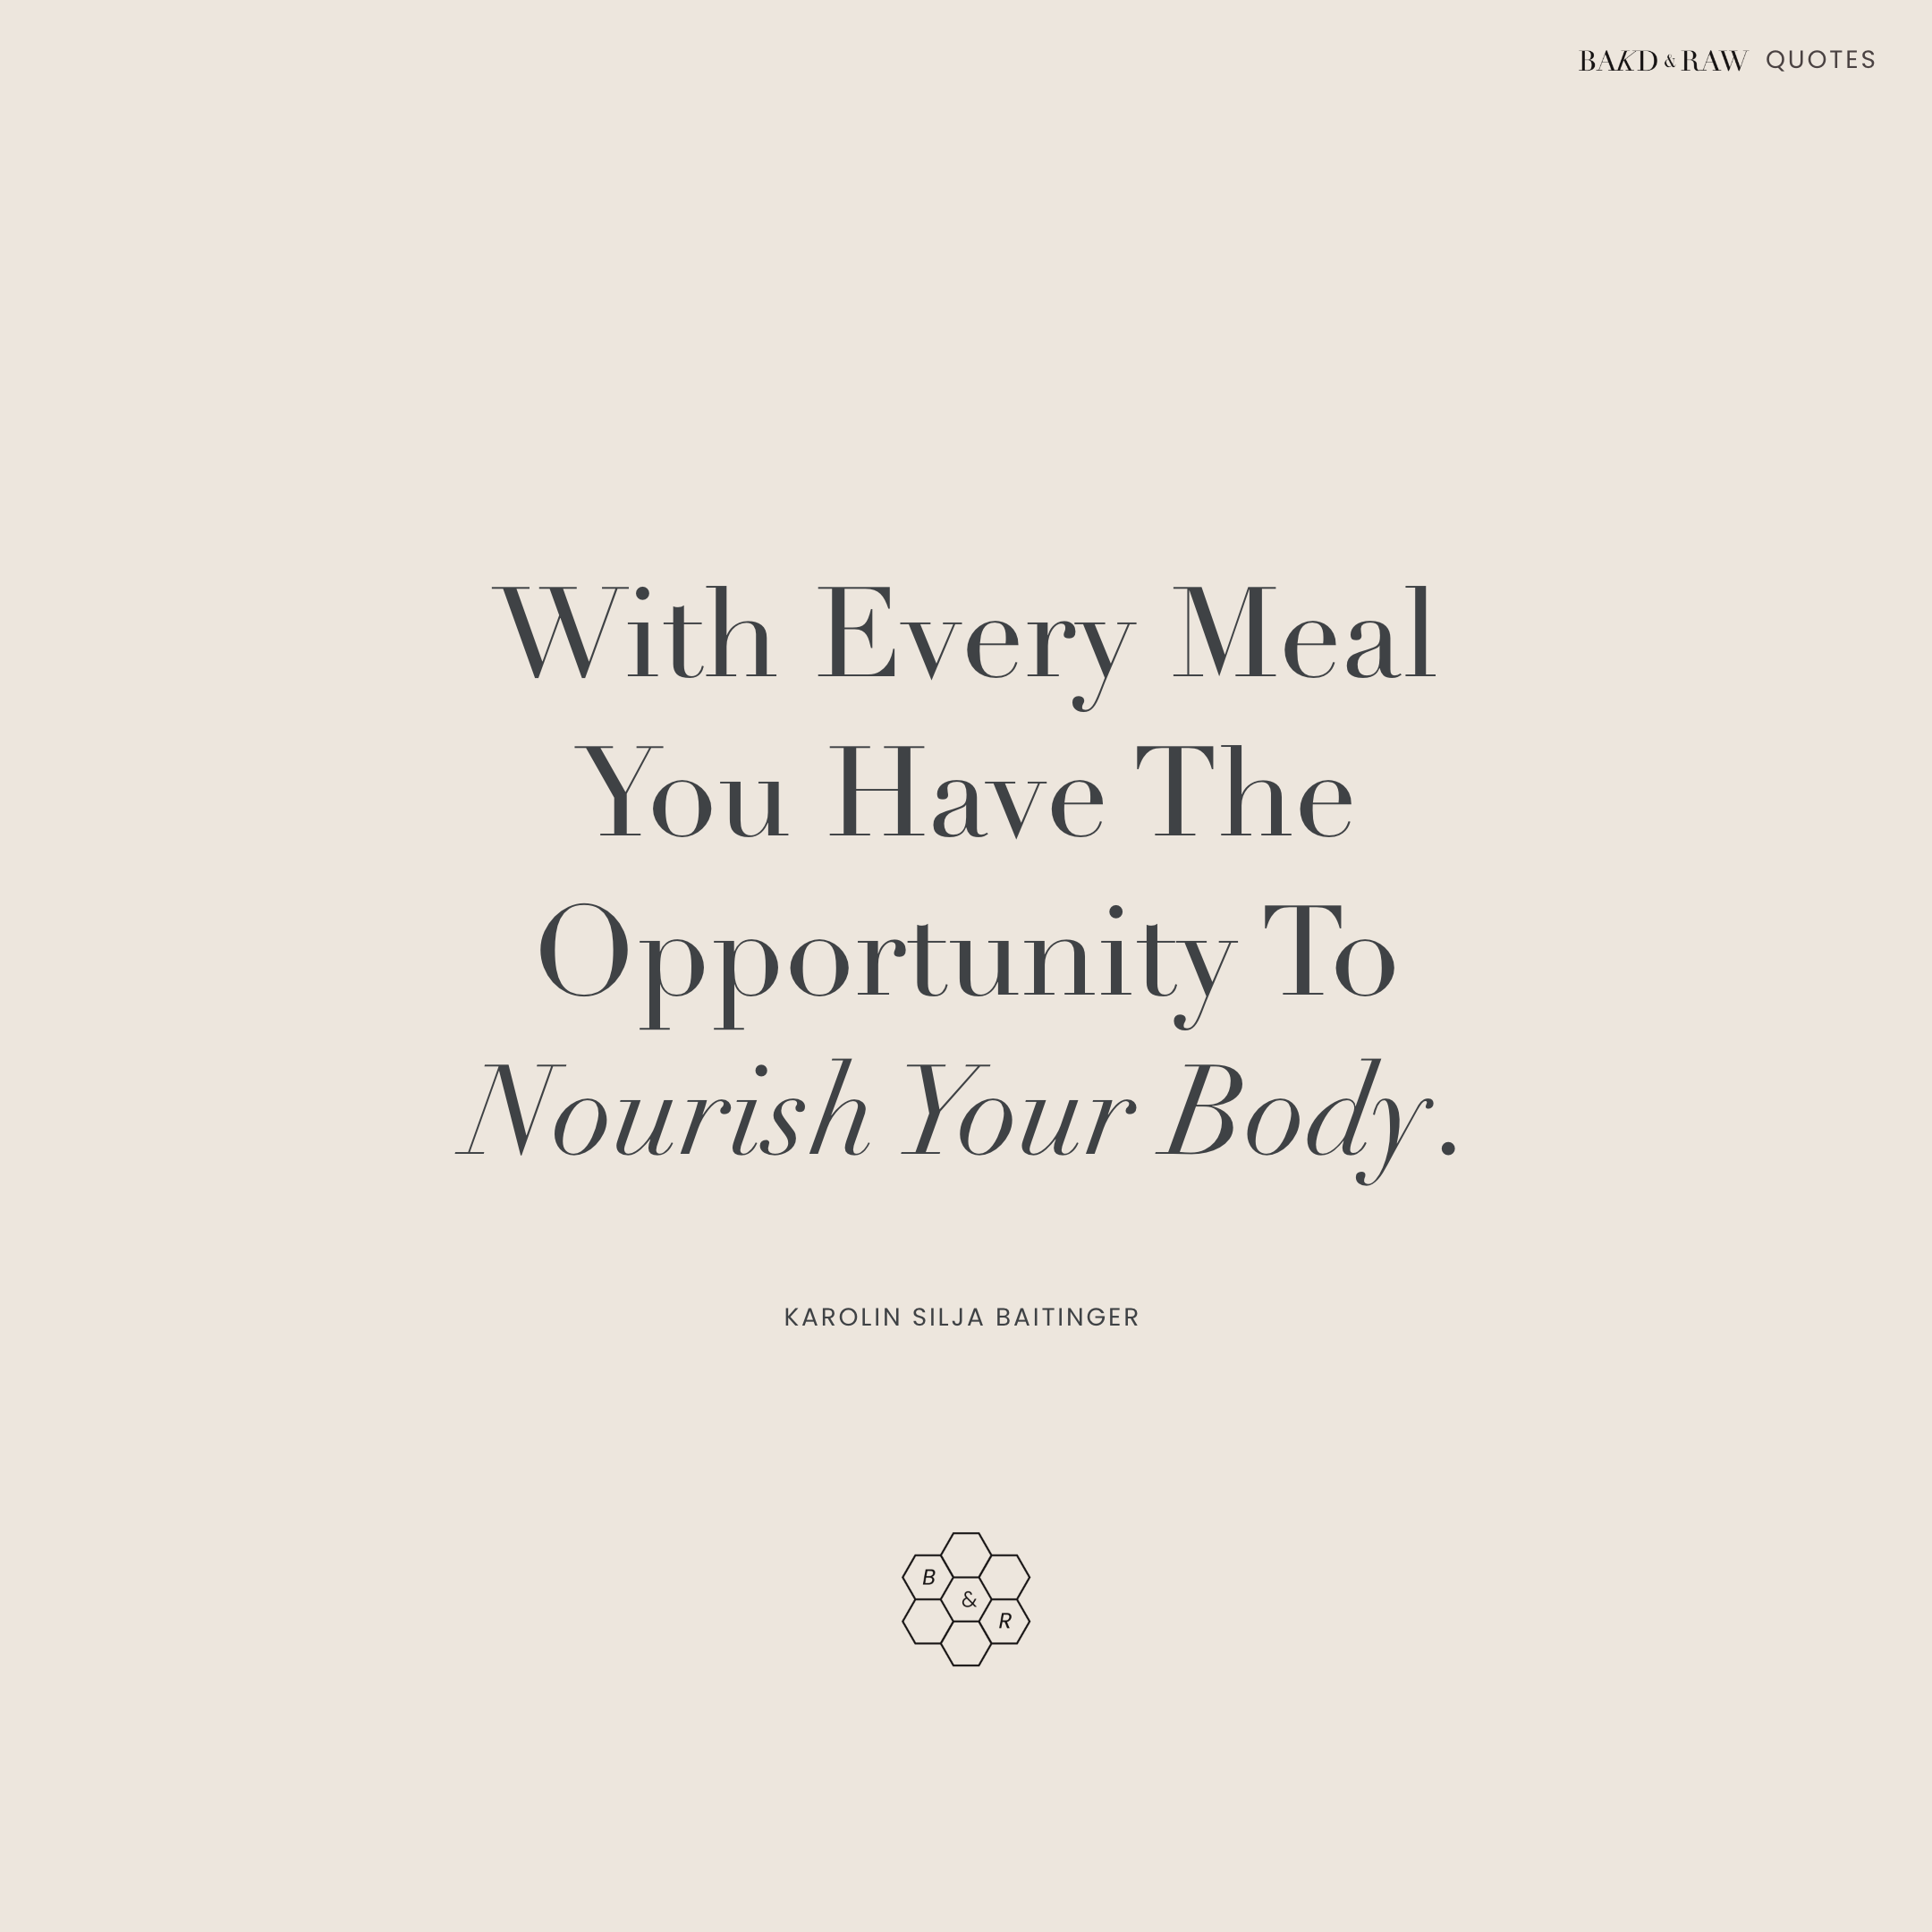 With Every Meal, Bakd&Raw Food Quotes by Karolin Baitinger